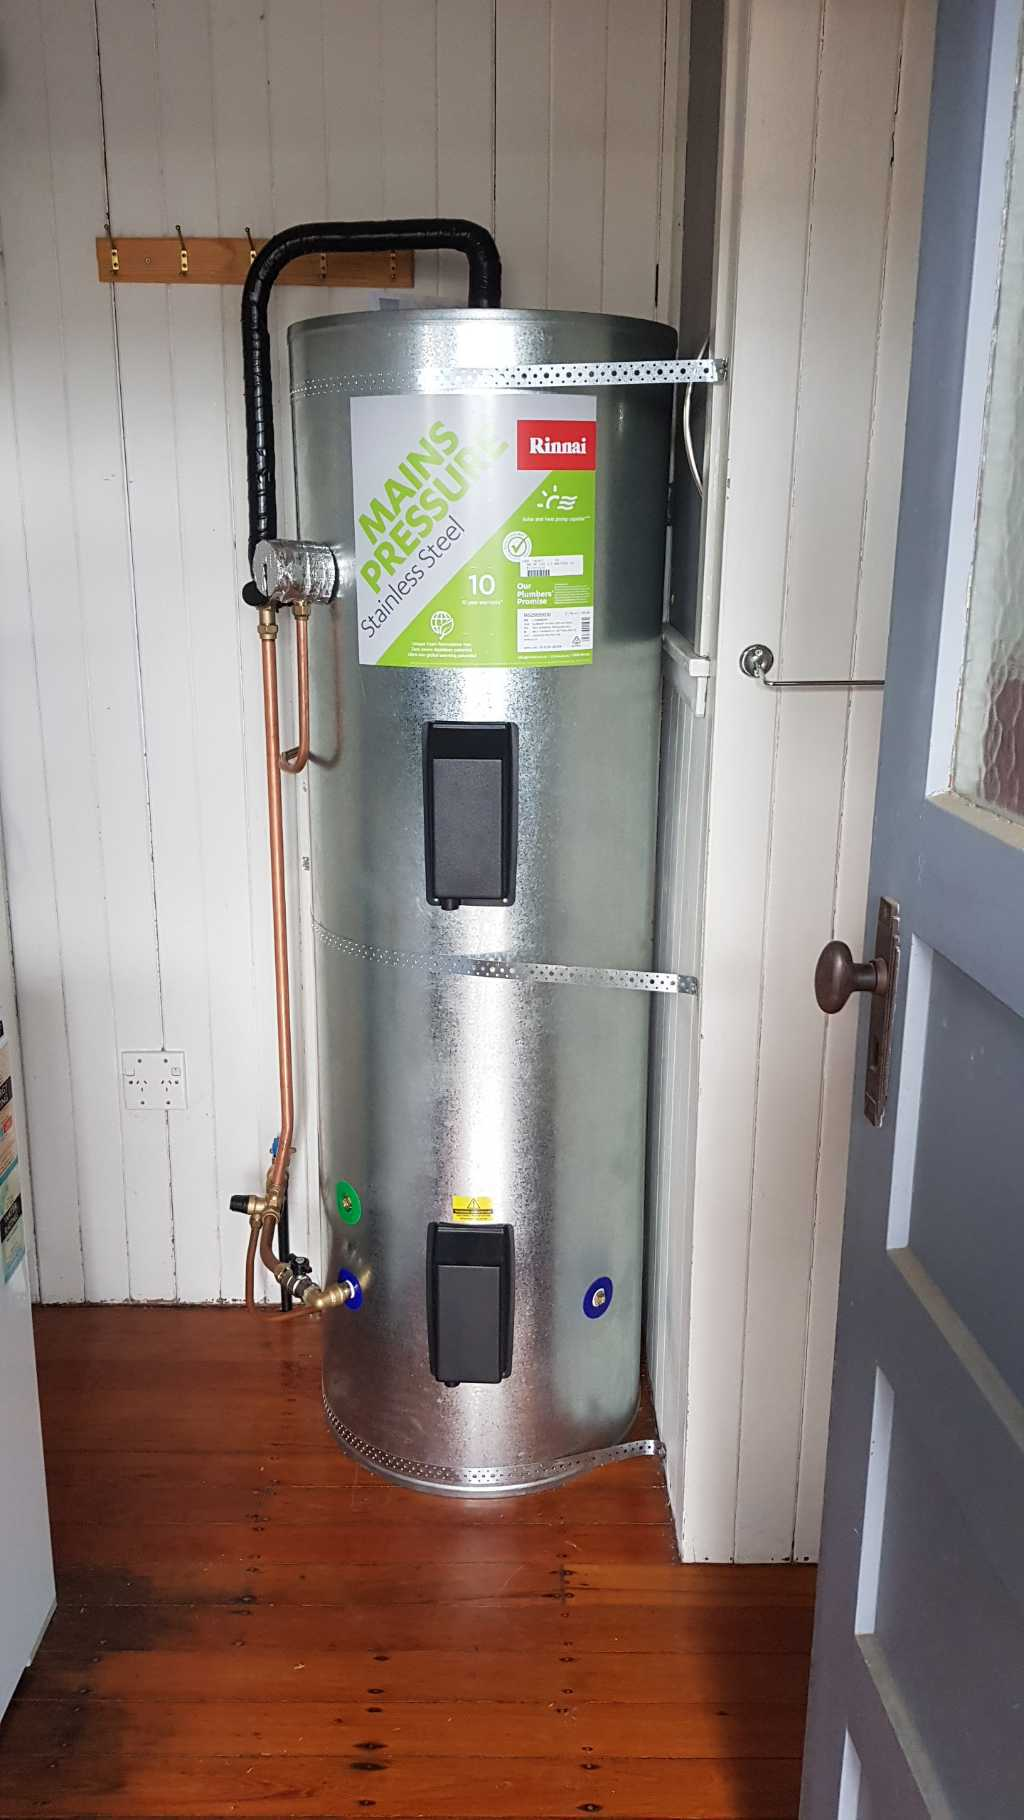 Indoor Rinnai mains pressure hot water cylinder